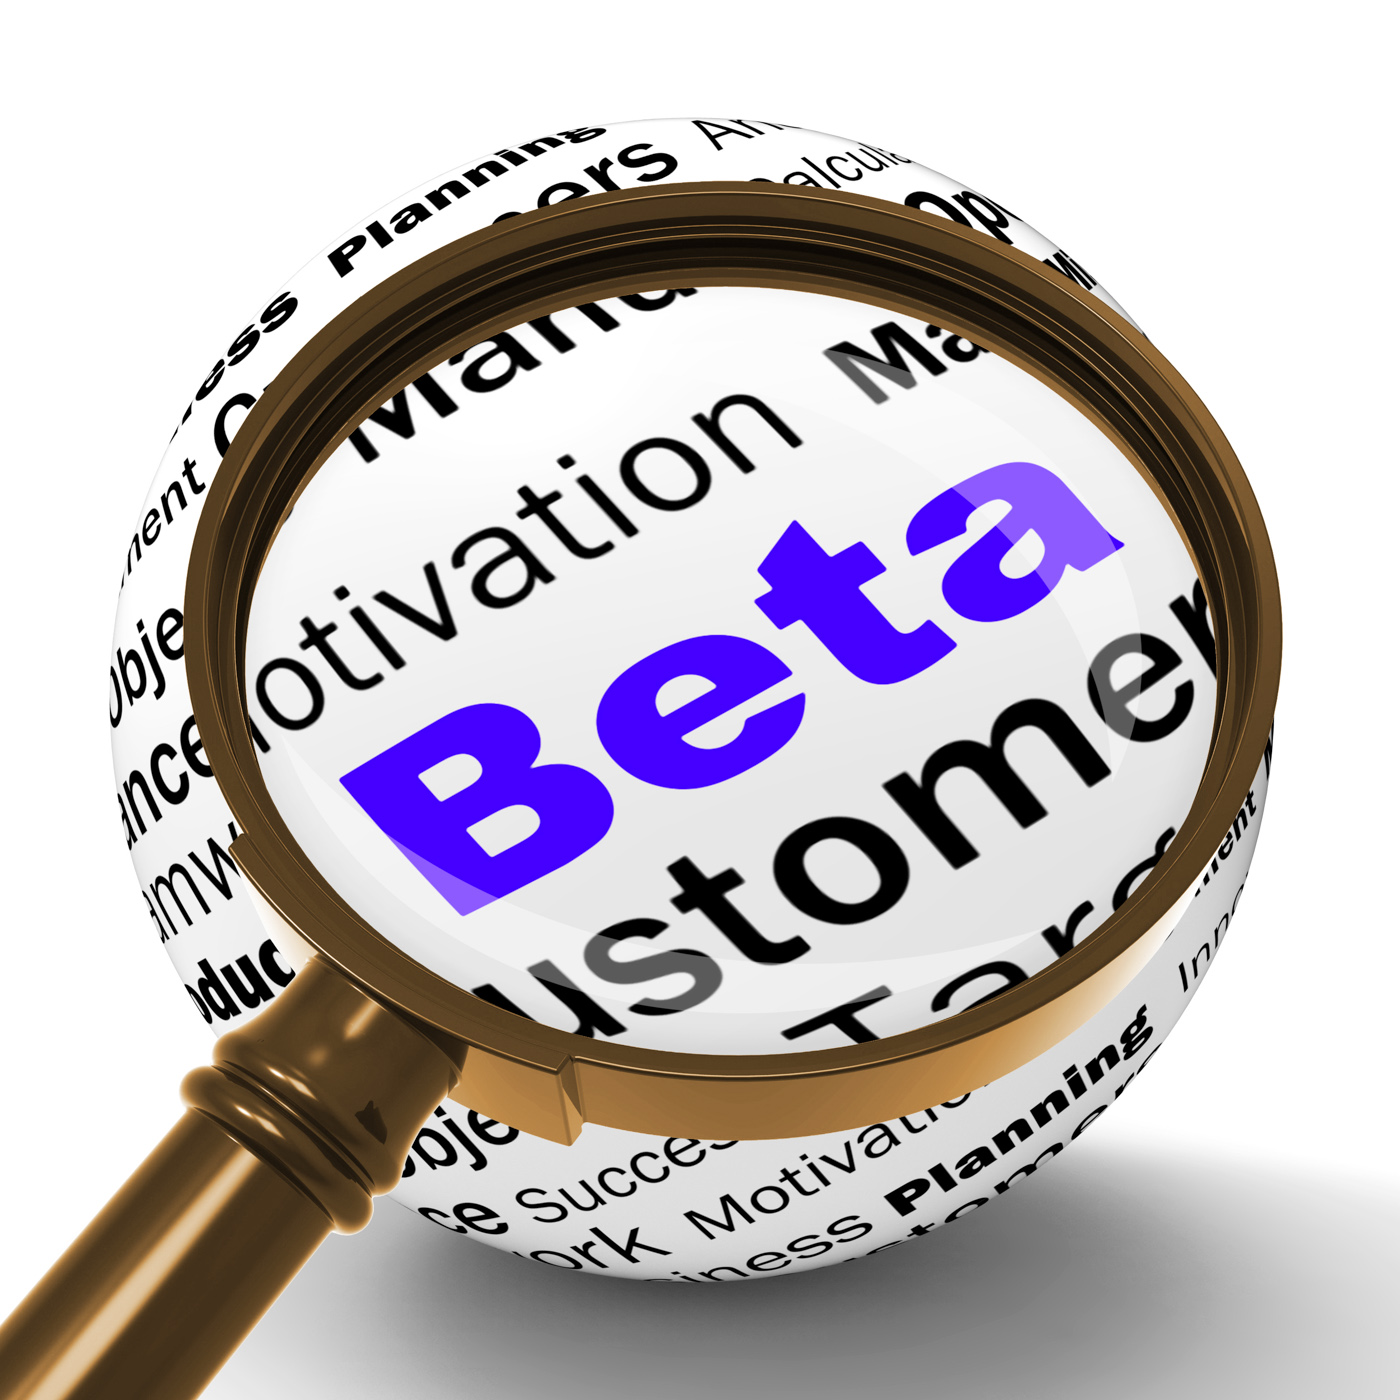 Beta Magnifier Definition Shows Trial Version Or Testing, Beta, Definition, Demo, Development, HQ Photo